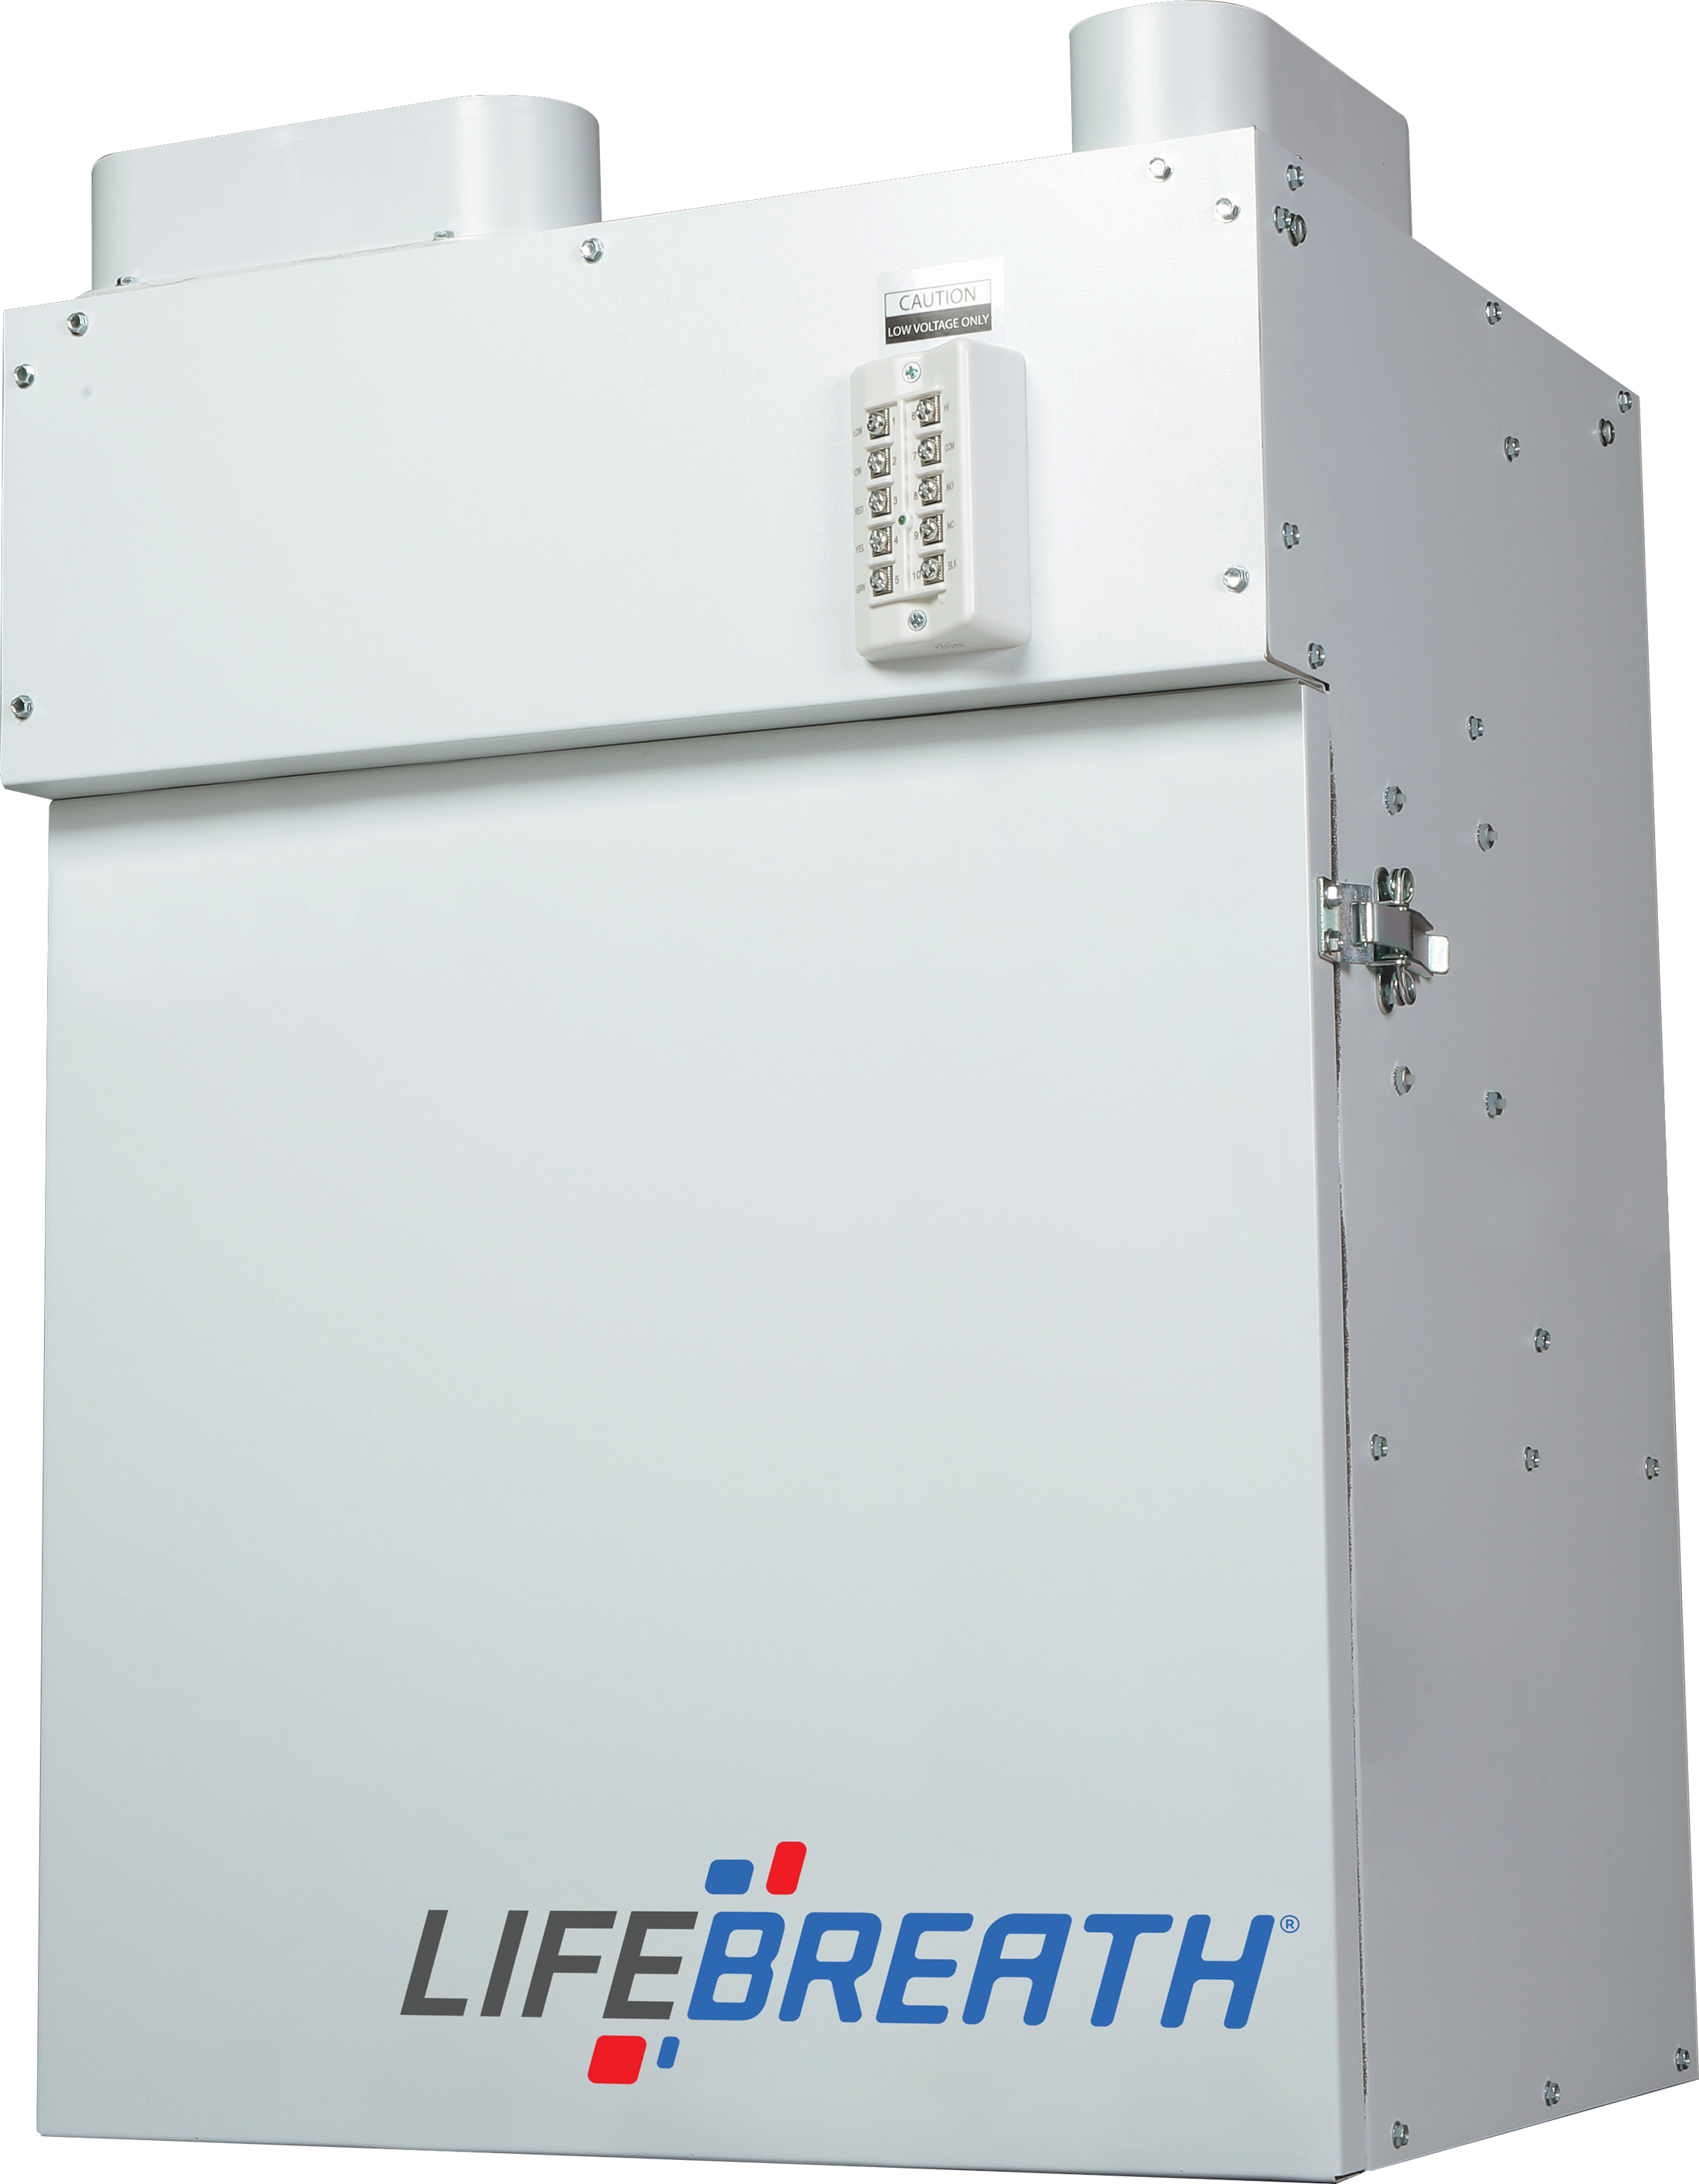 Lifebreath Rnc 95 Residential Heat Recovery Ventilator